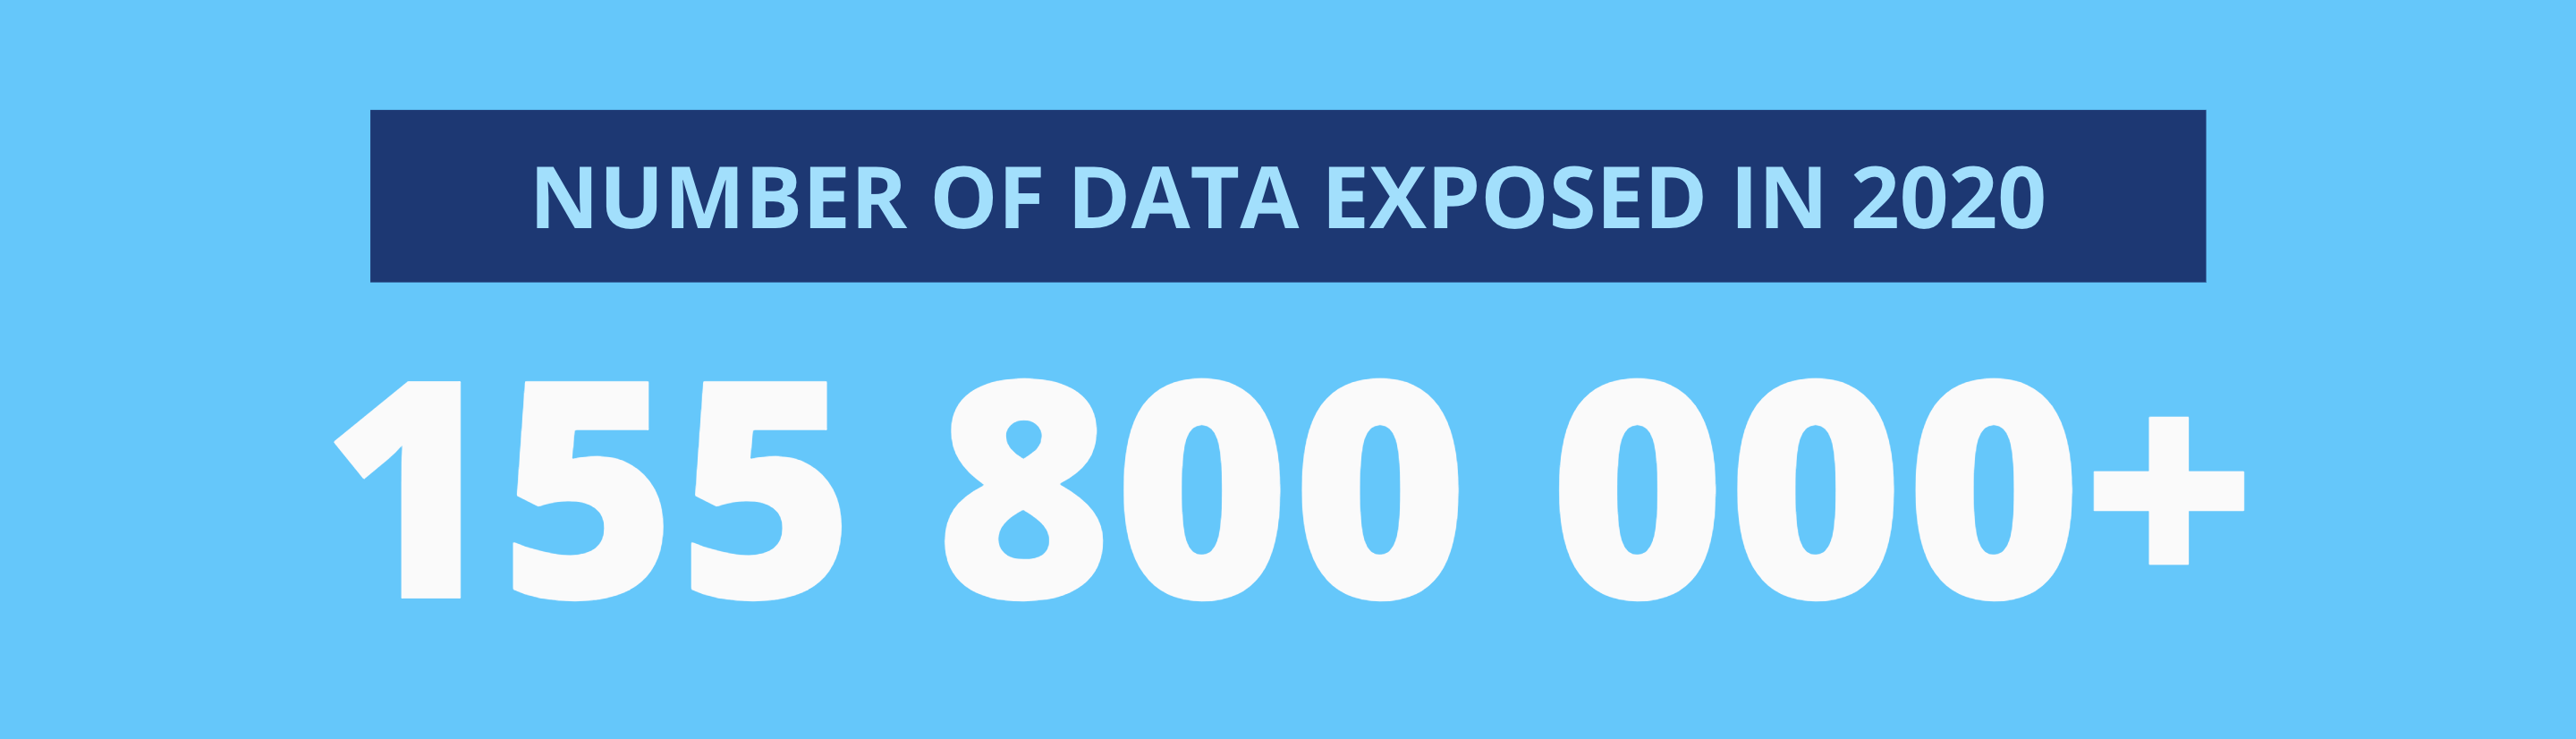 Number of data exposed in 2020 Ayruu